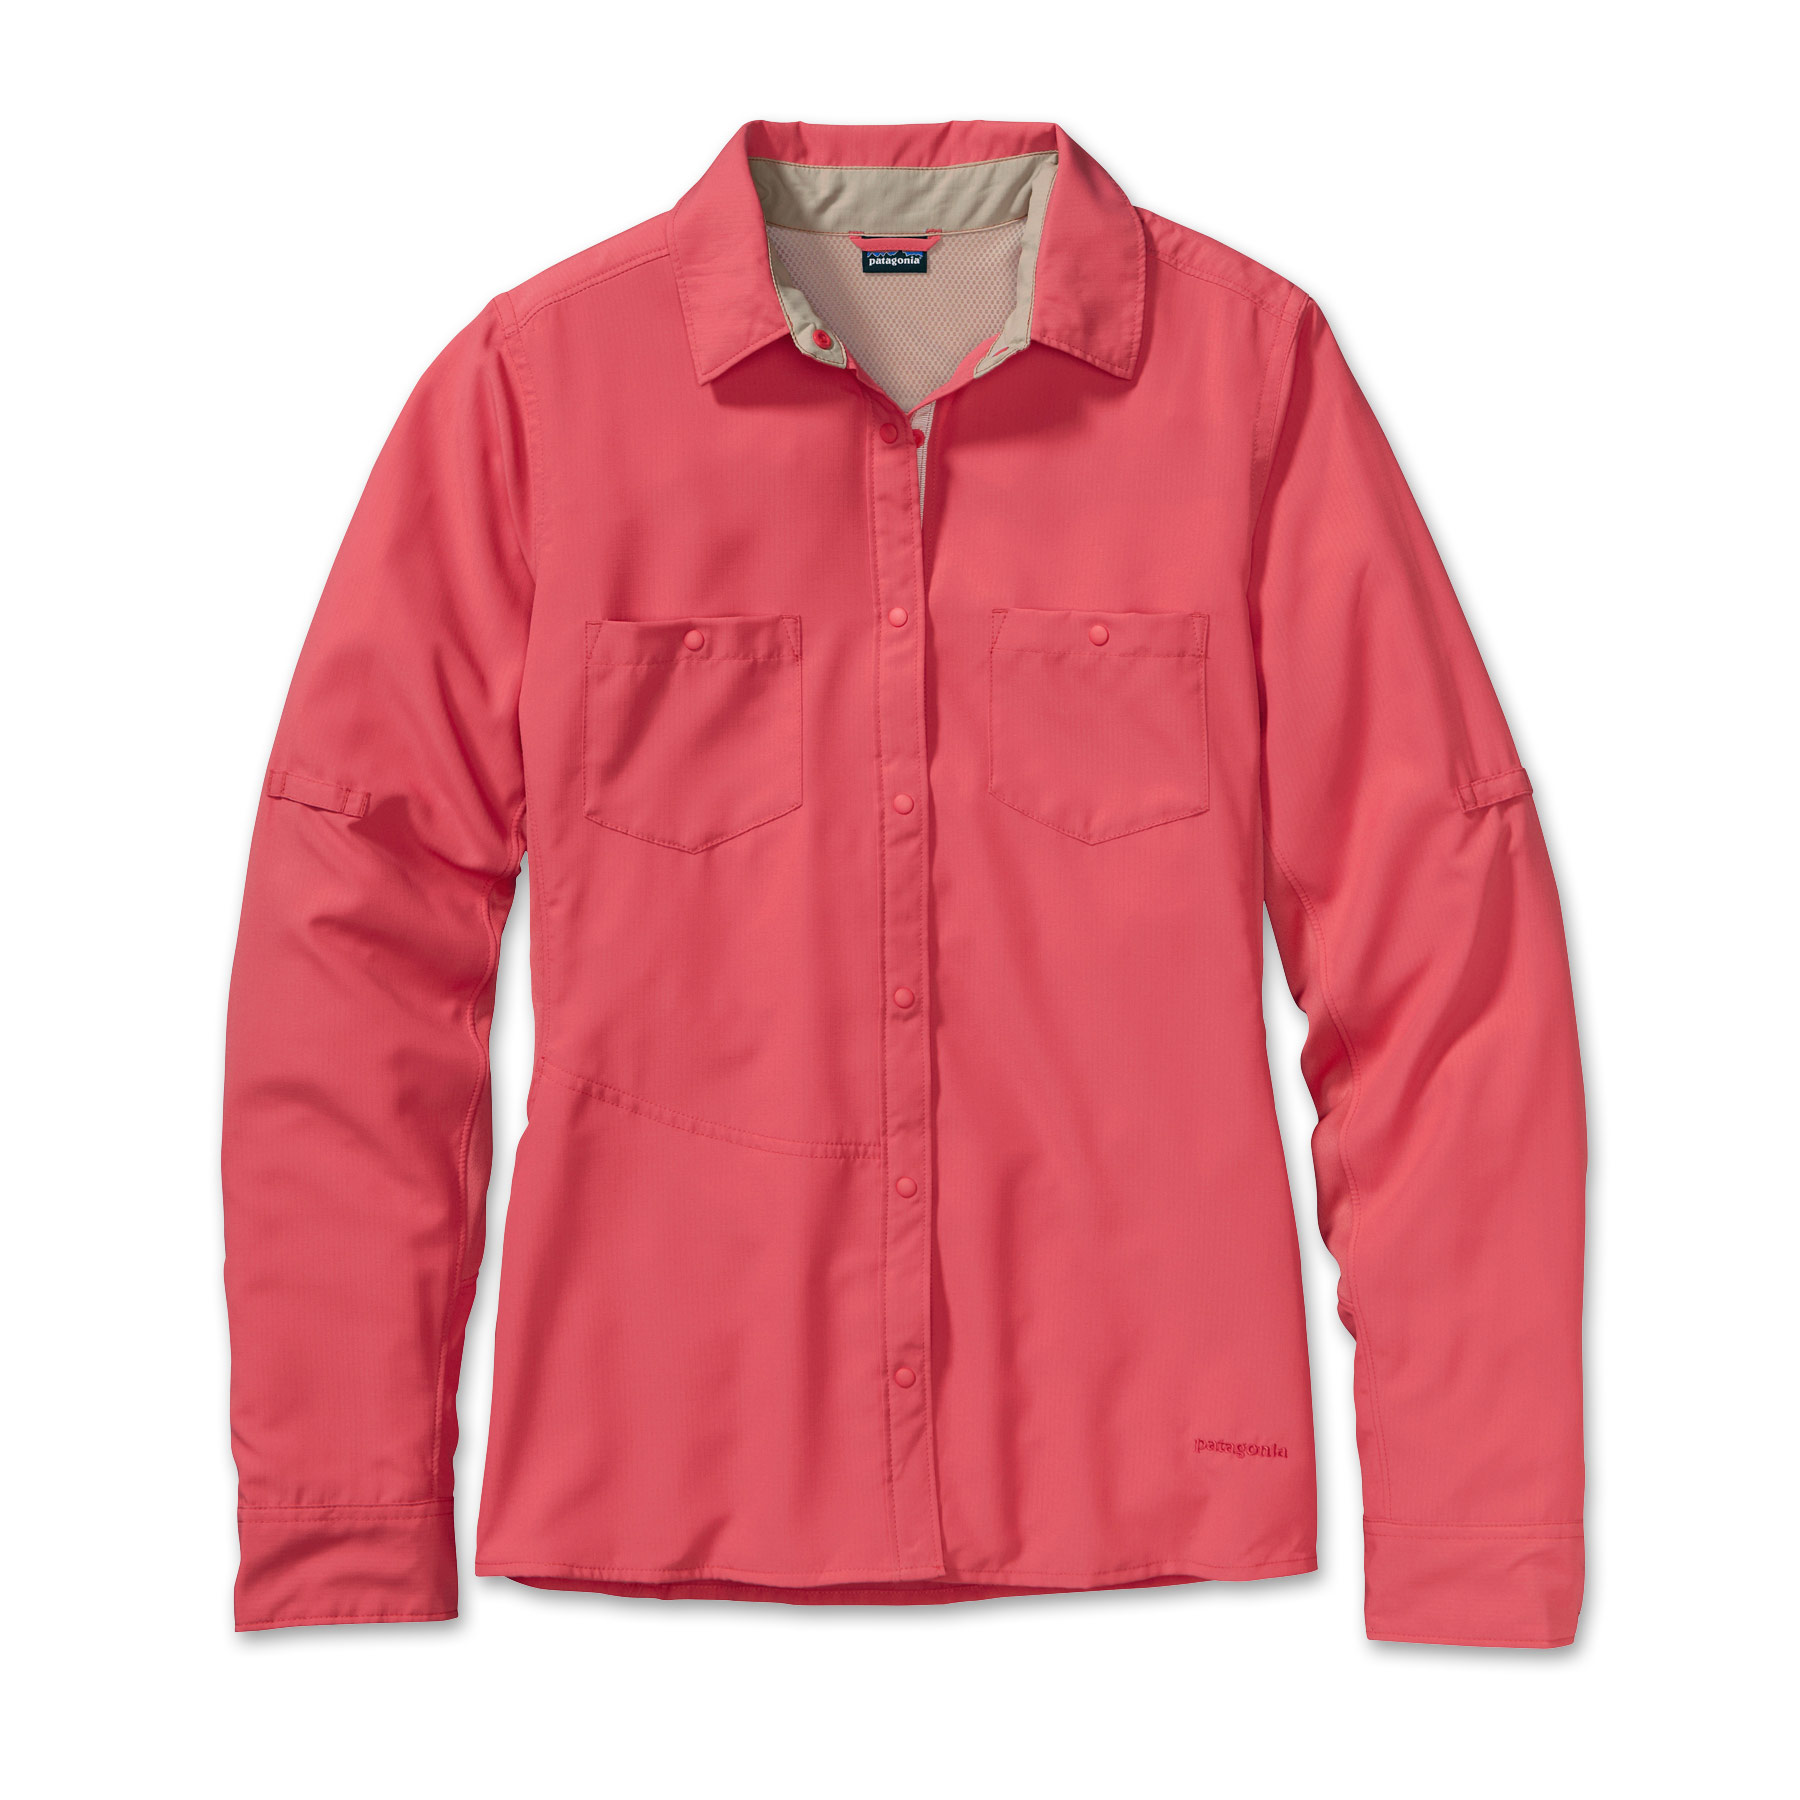 Women's Long-Sleeved Sol Patrol Shirt